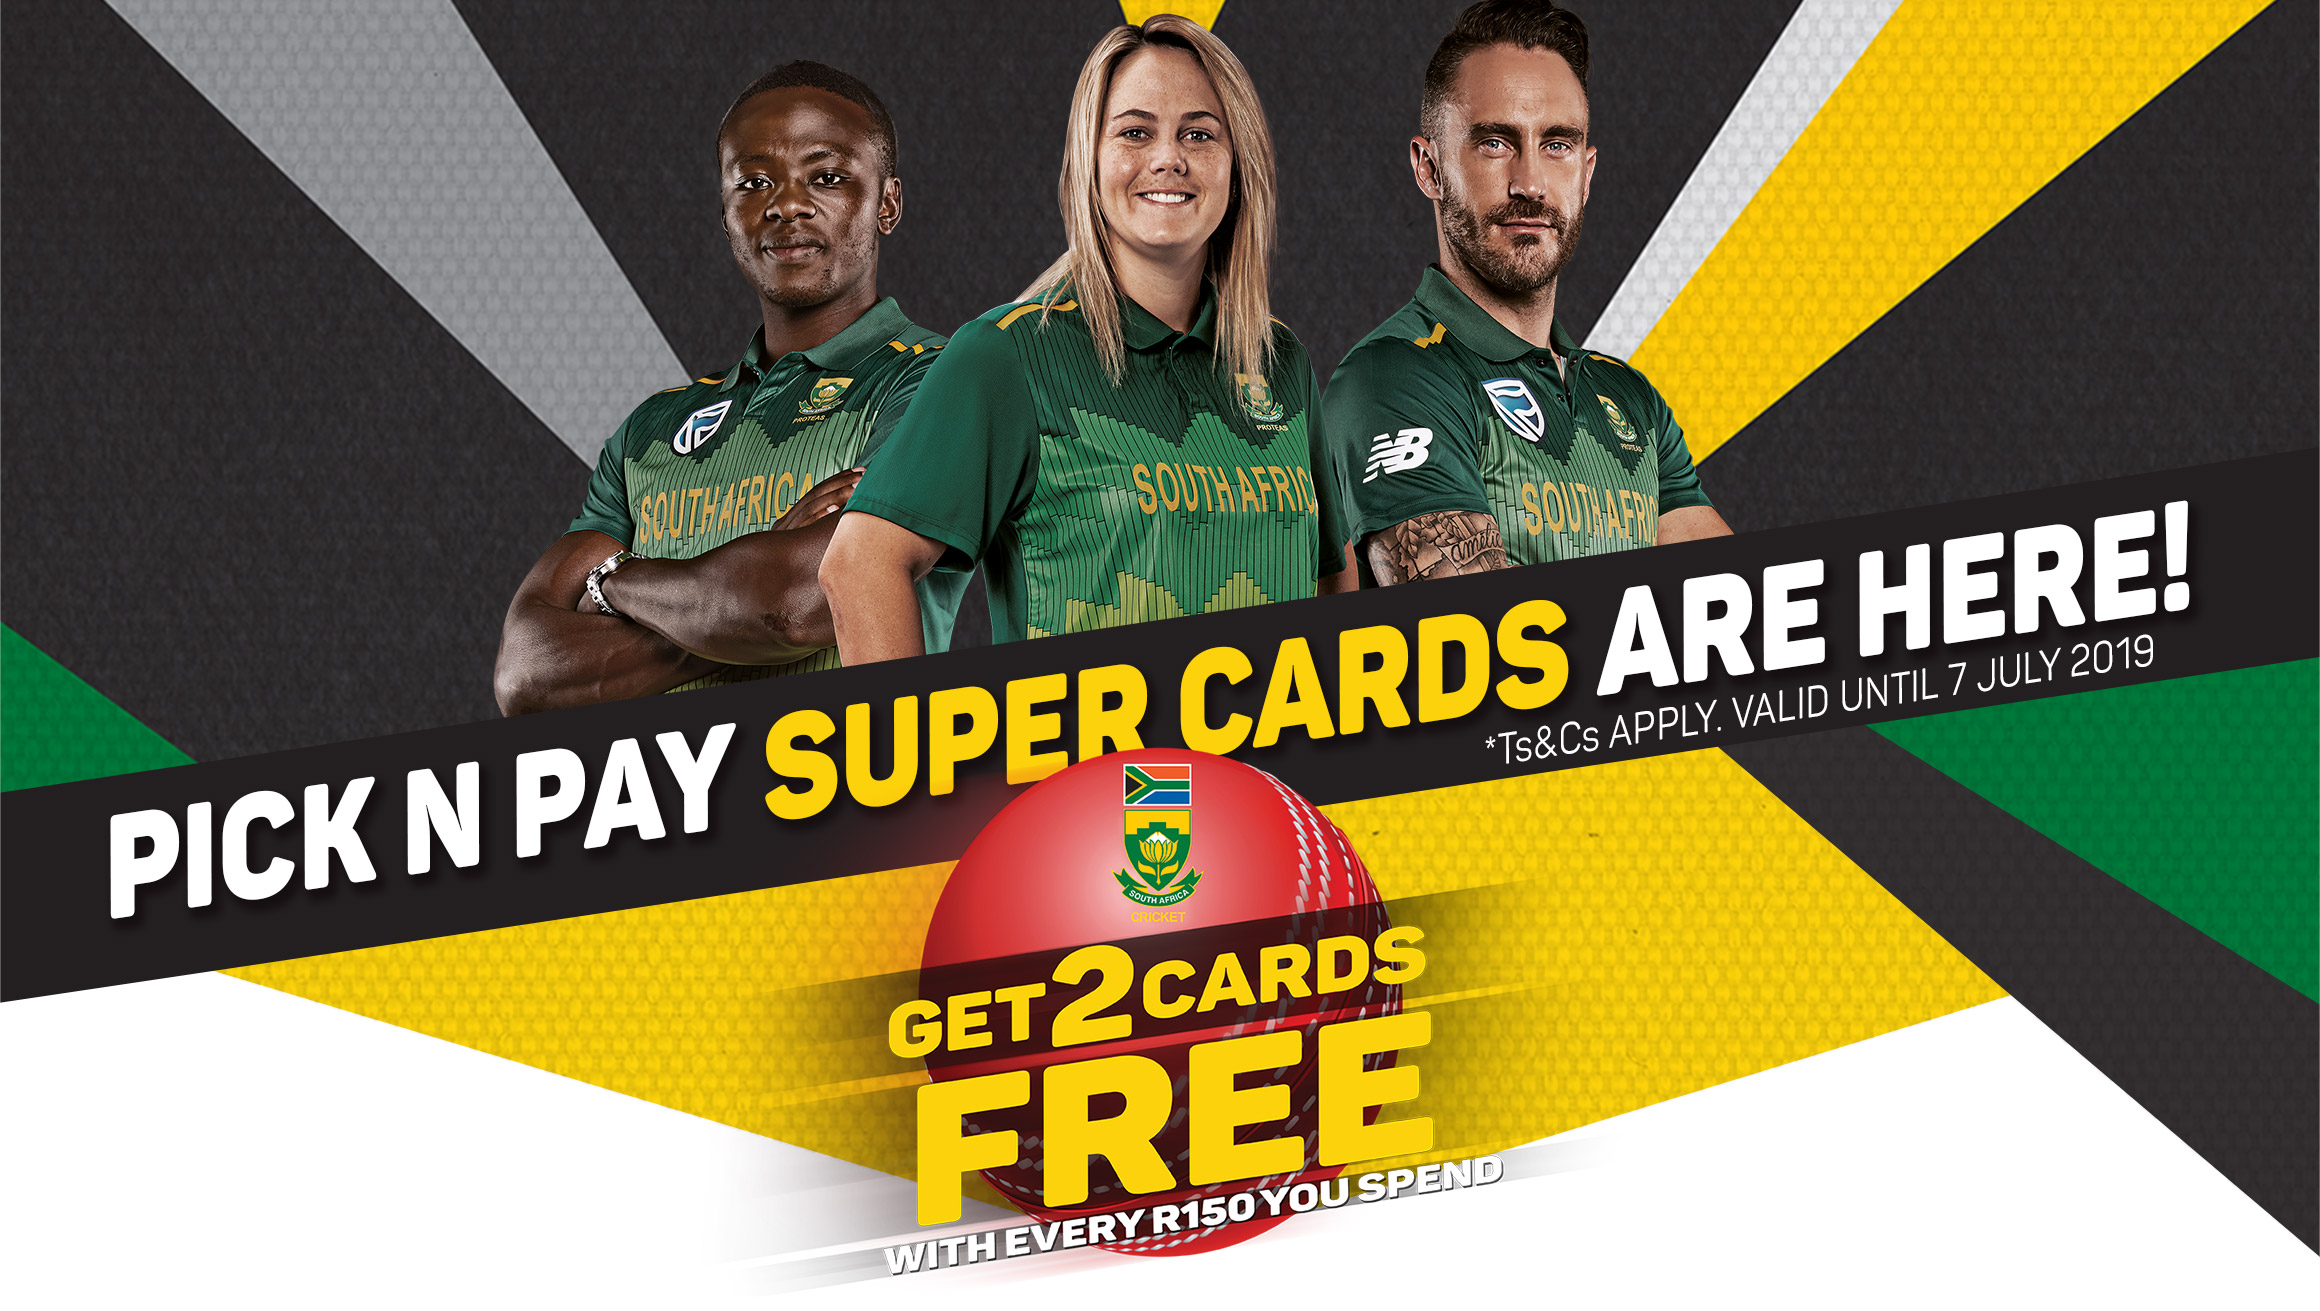 Pick n Pay Super Cards are here! Get 2 cards free with evrey R150 you spend